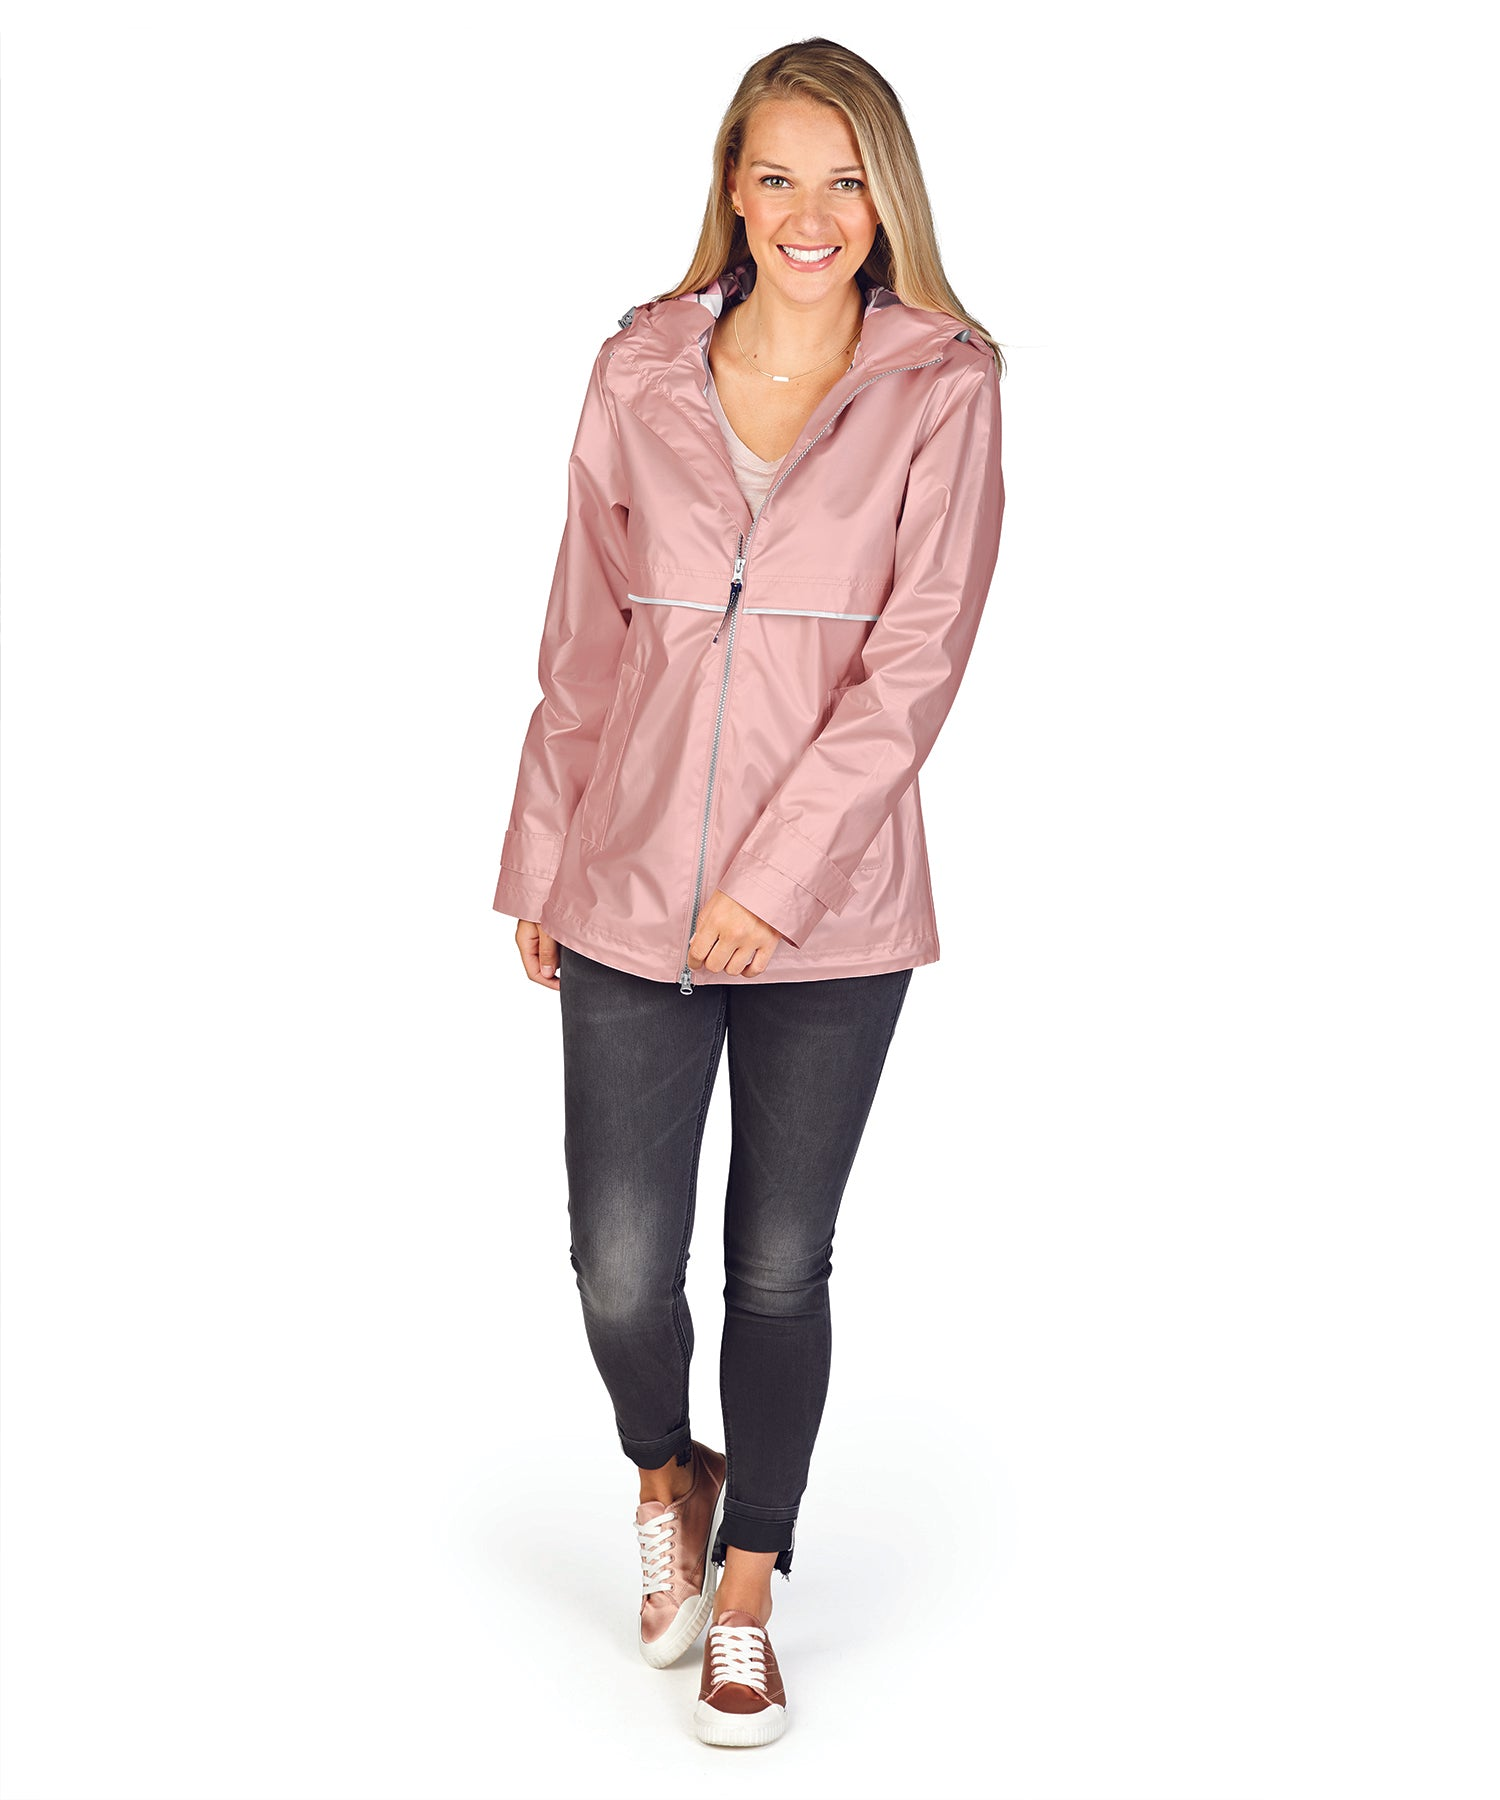 36e23ed8e New Englander Rain Jacket in Rose Gold by Charles River Apparel (Ships in  1-2 Weeks)